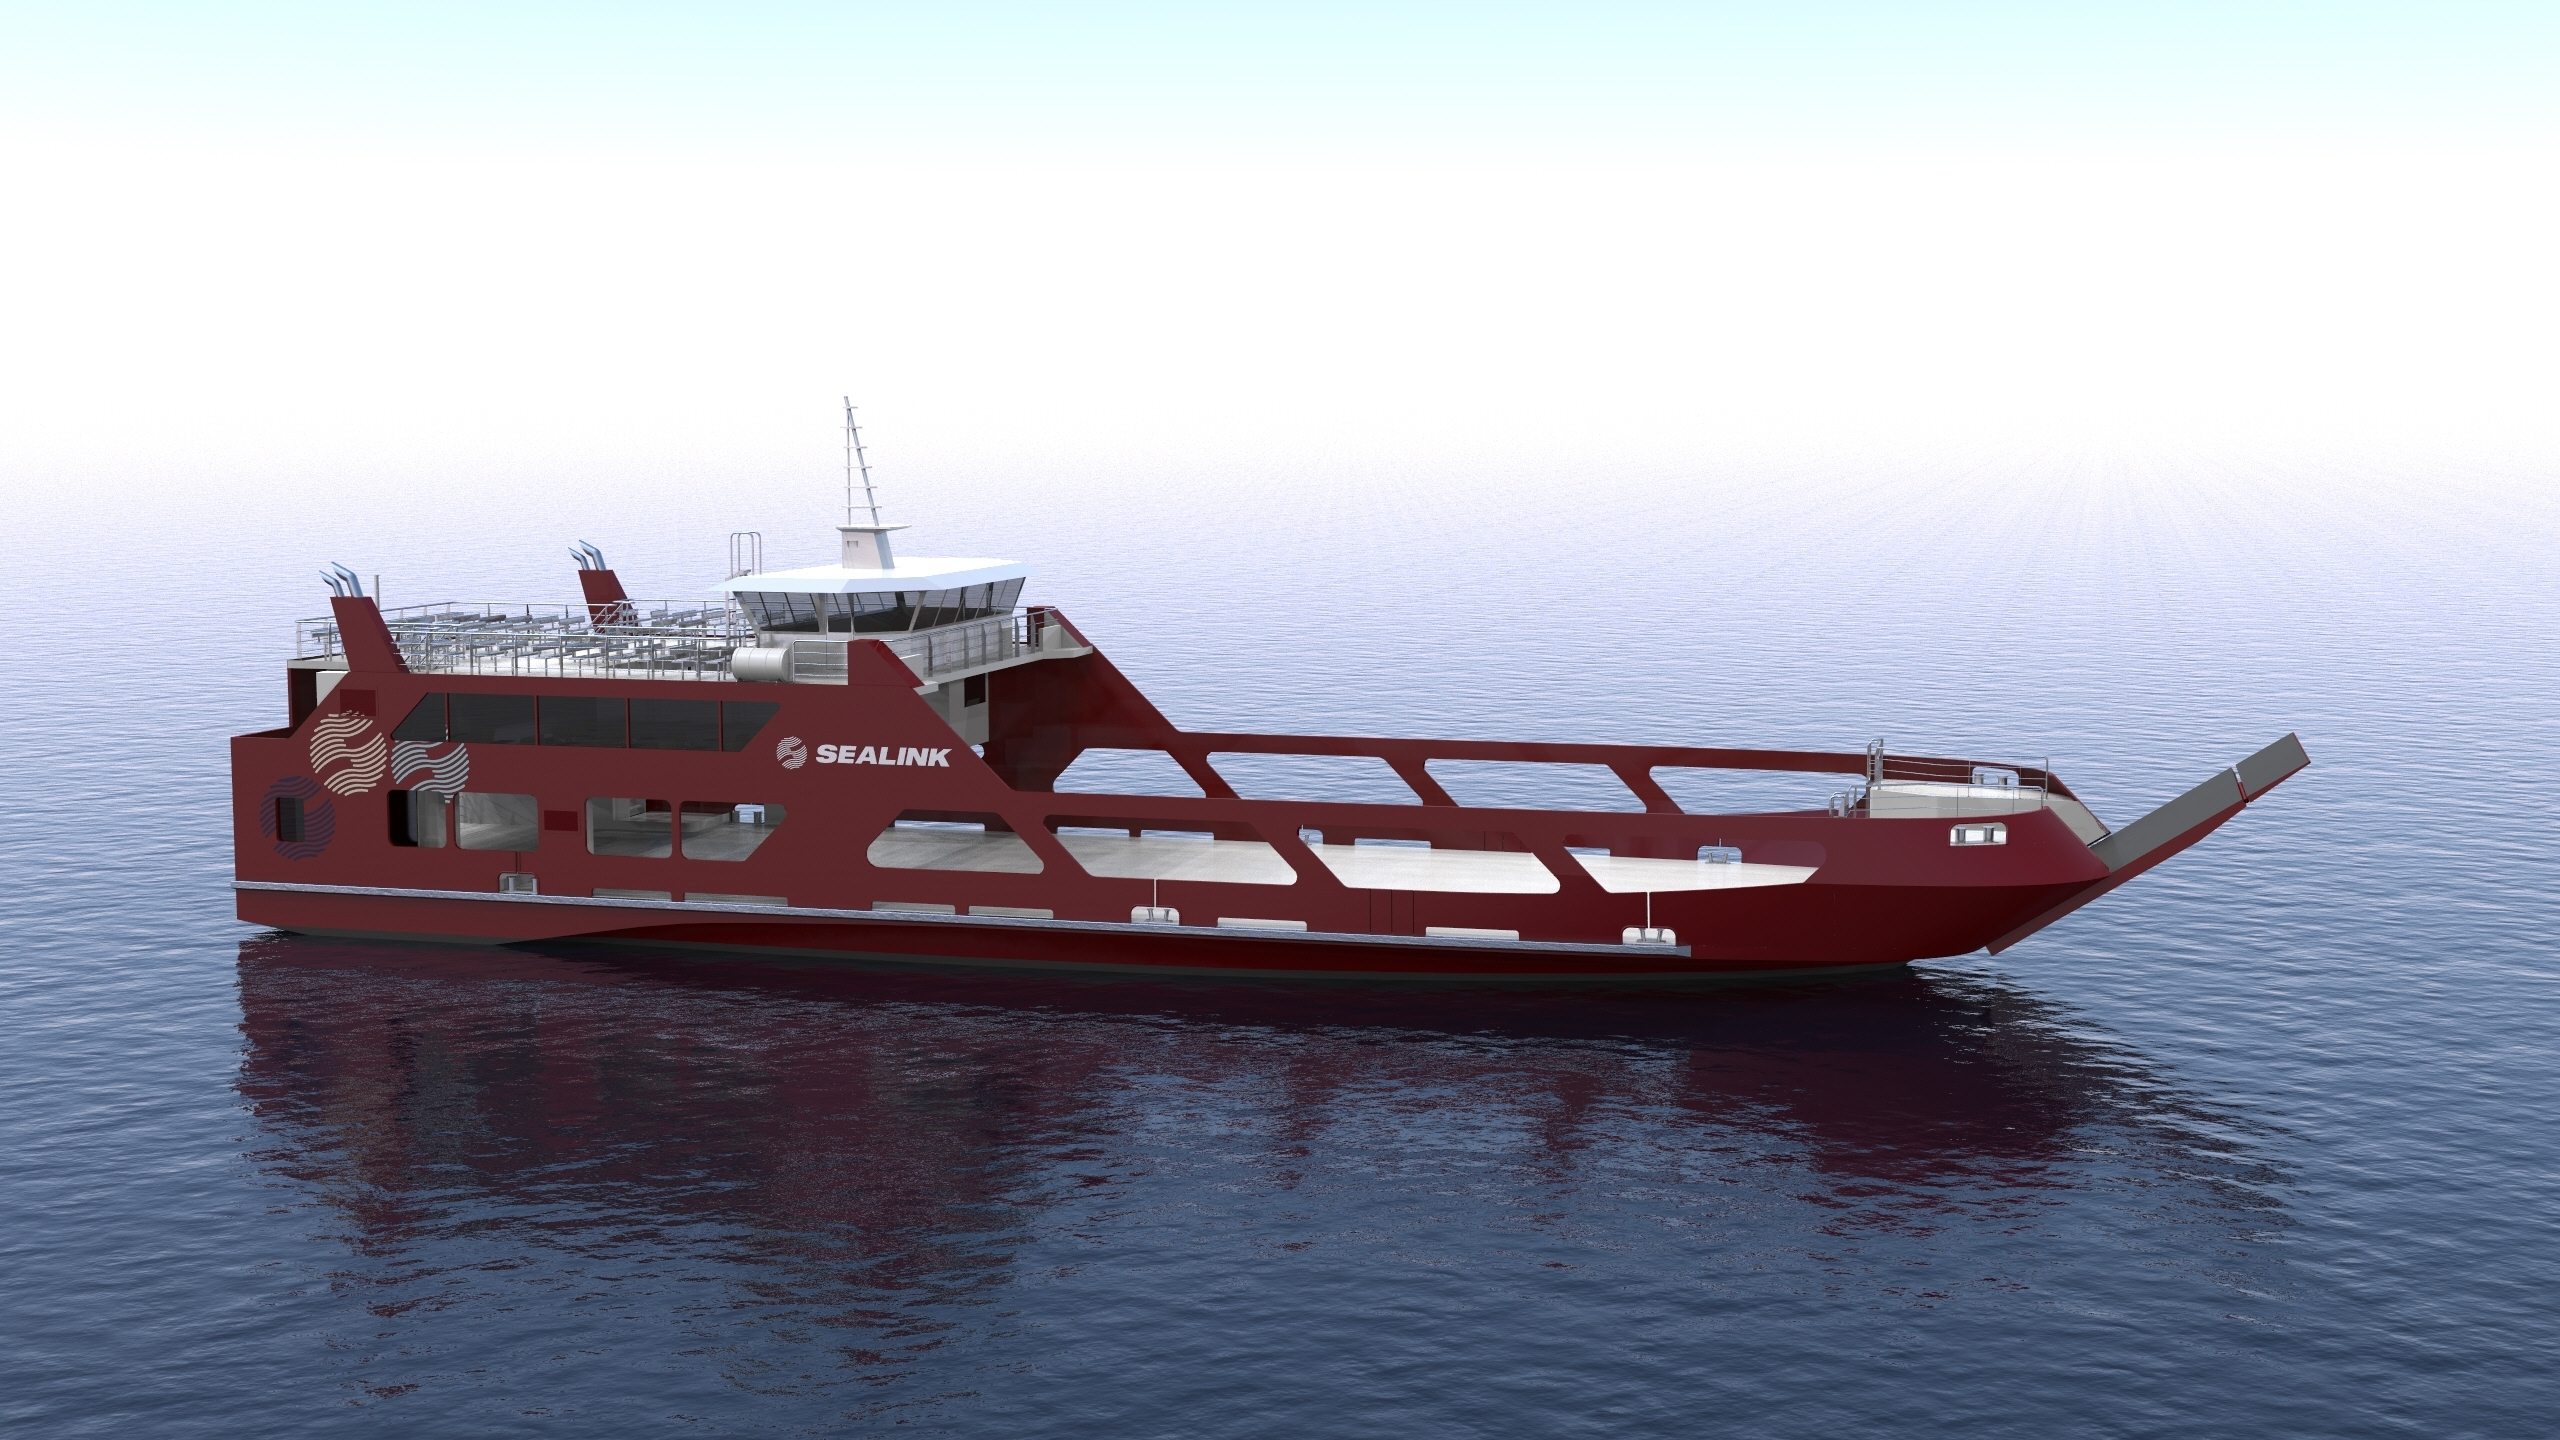 sealink ropax ferry render overall view starboard forward view